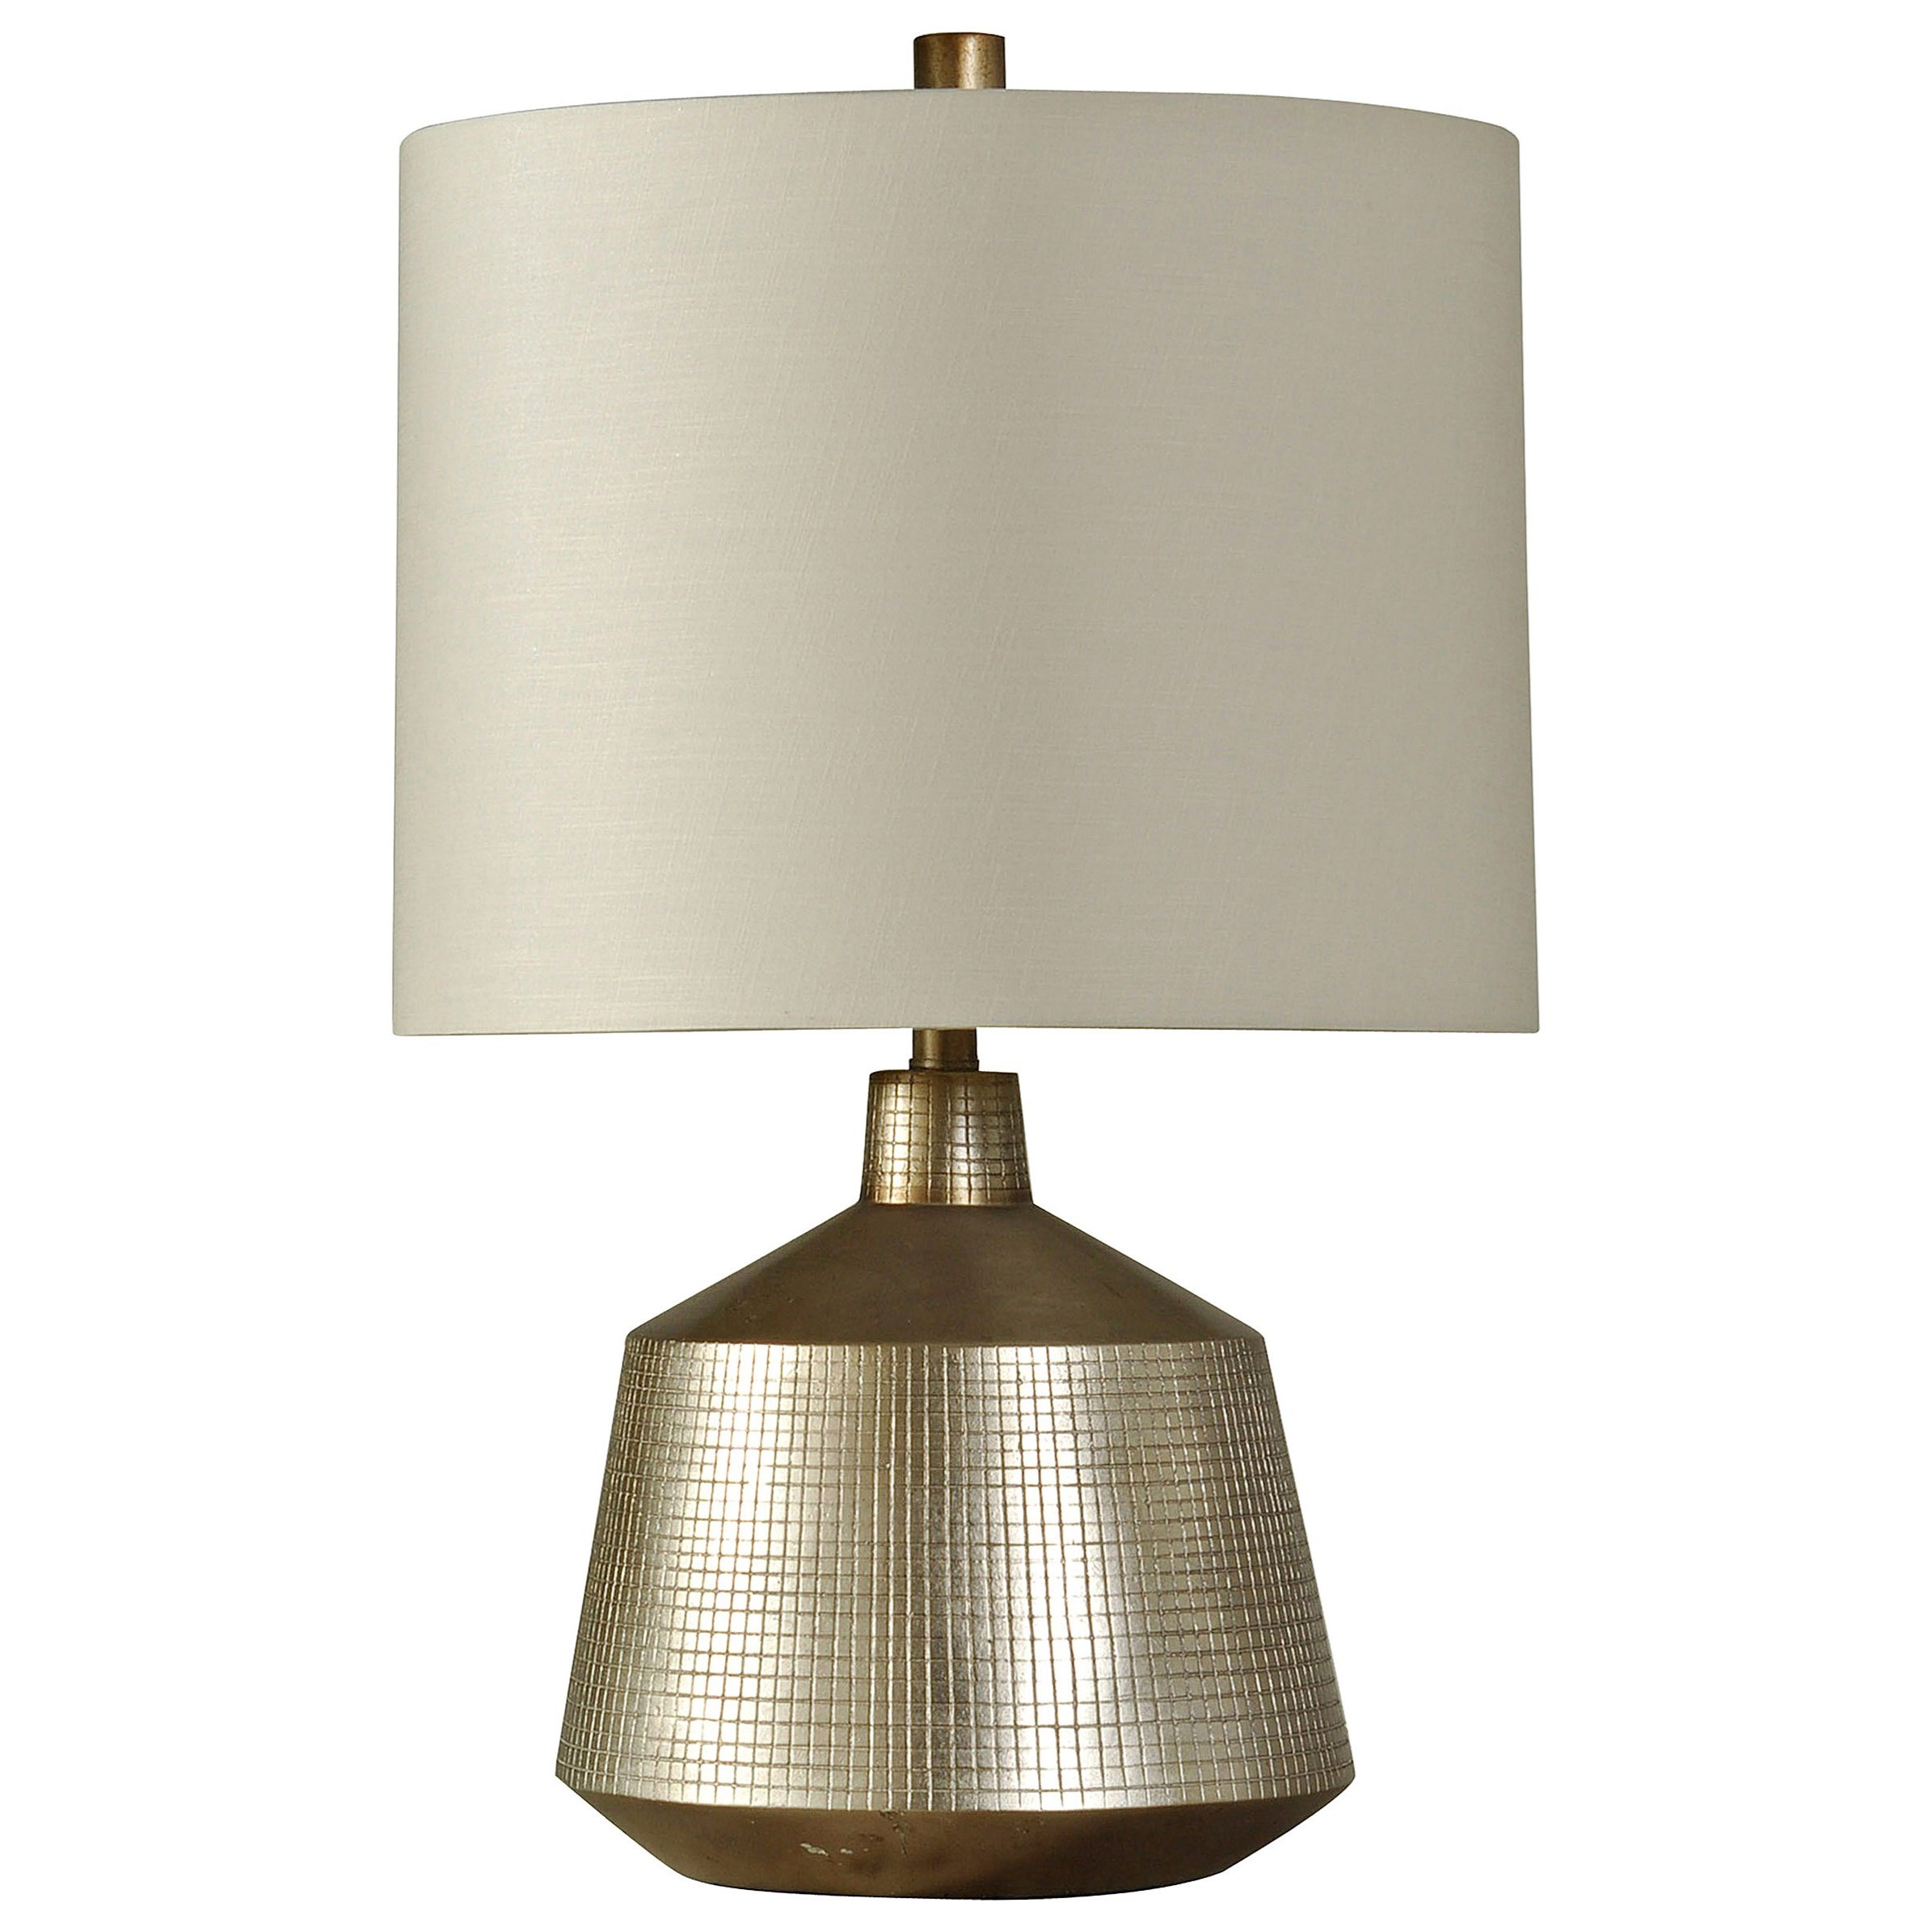 Lamps Contemporary Accent Lamp by StyleCraft at Westrich Furniture & Appliances